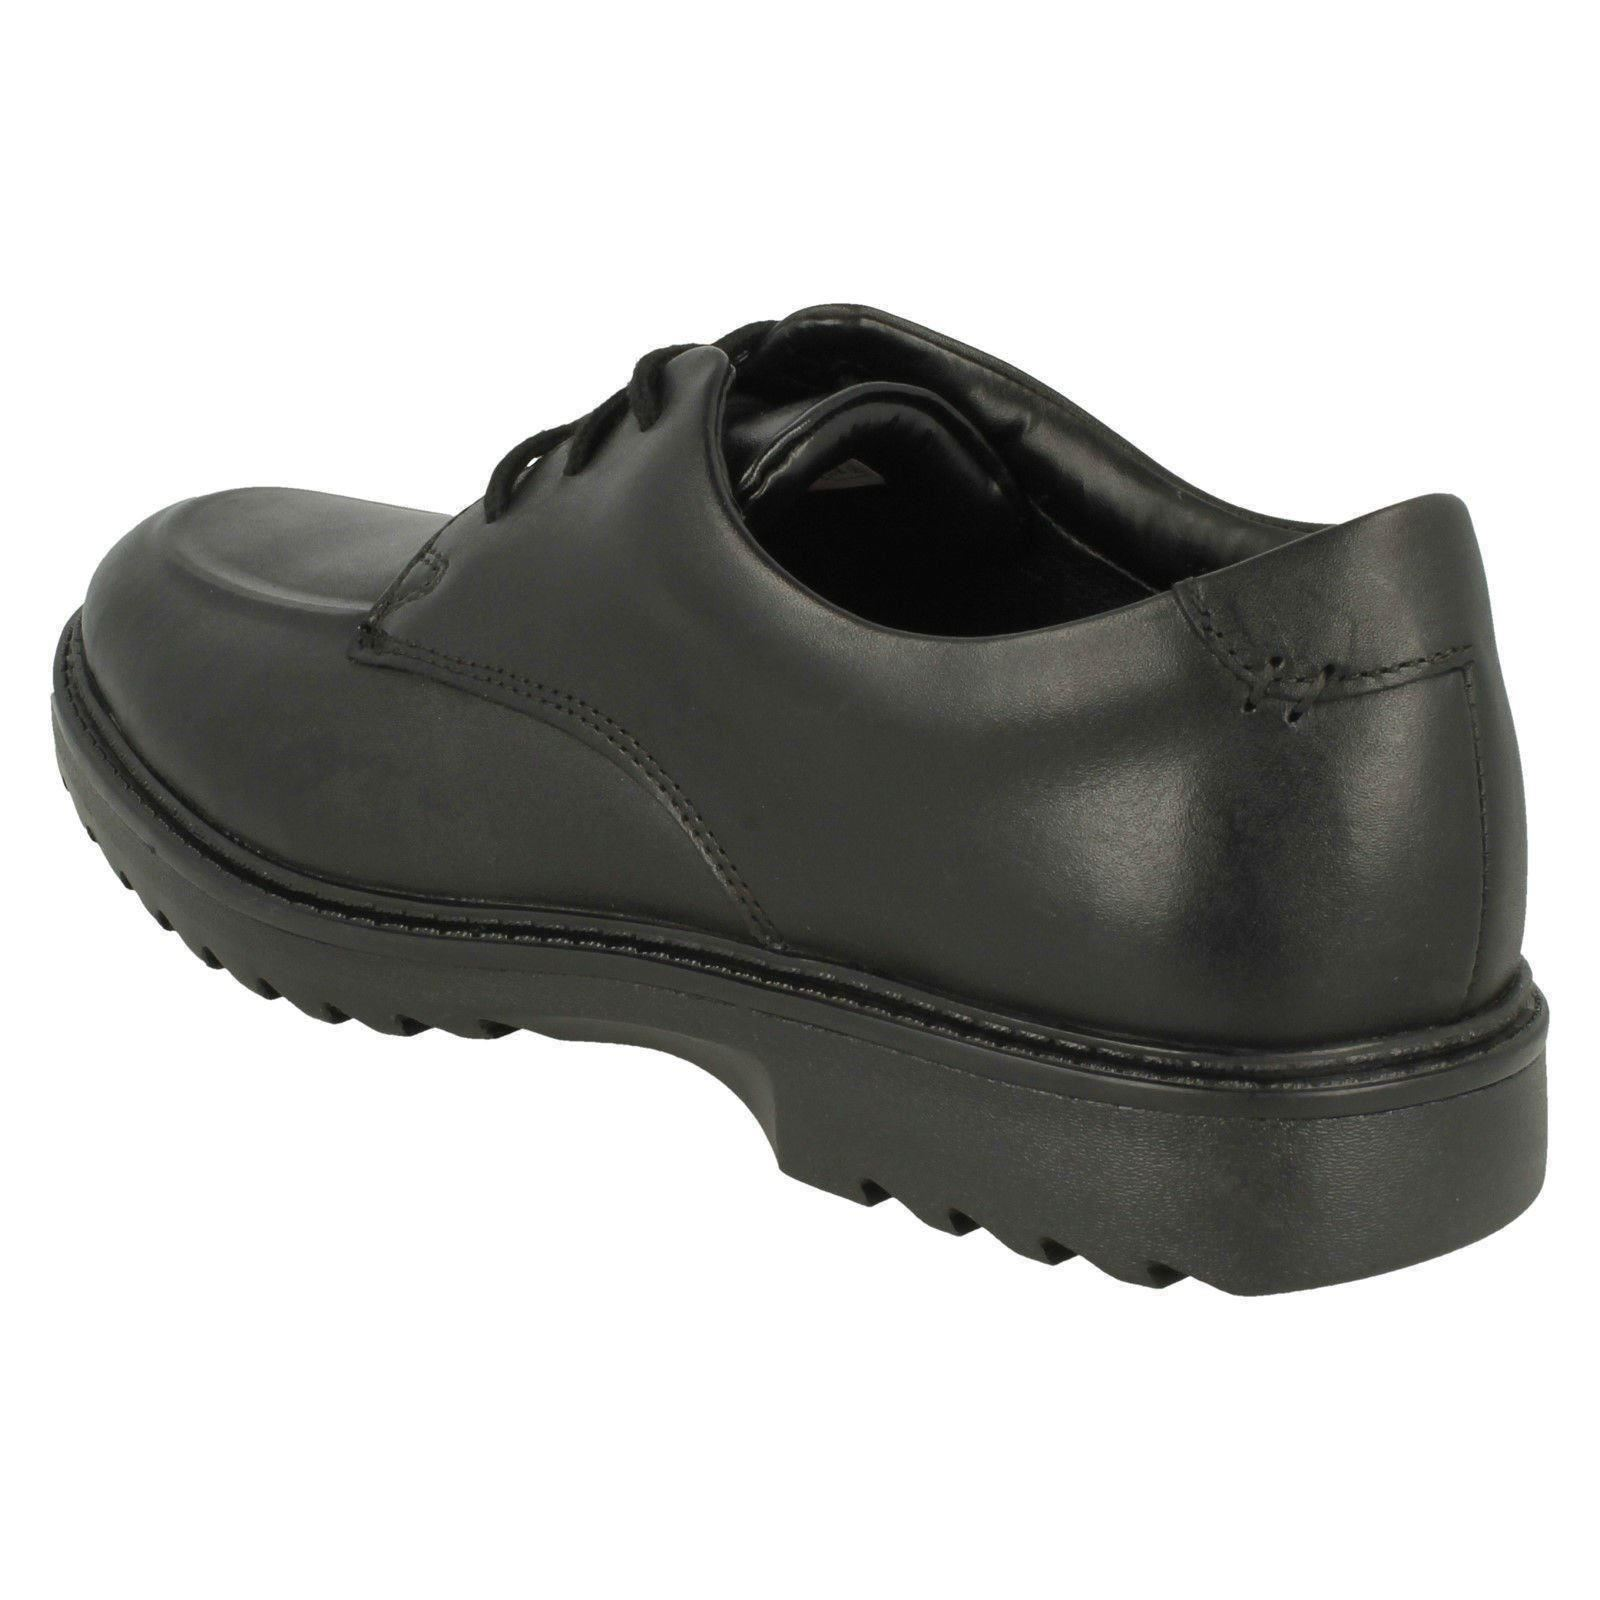 5e072d273 Boys Clarks Lace Up Formal Shoes  Asher Grove